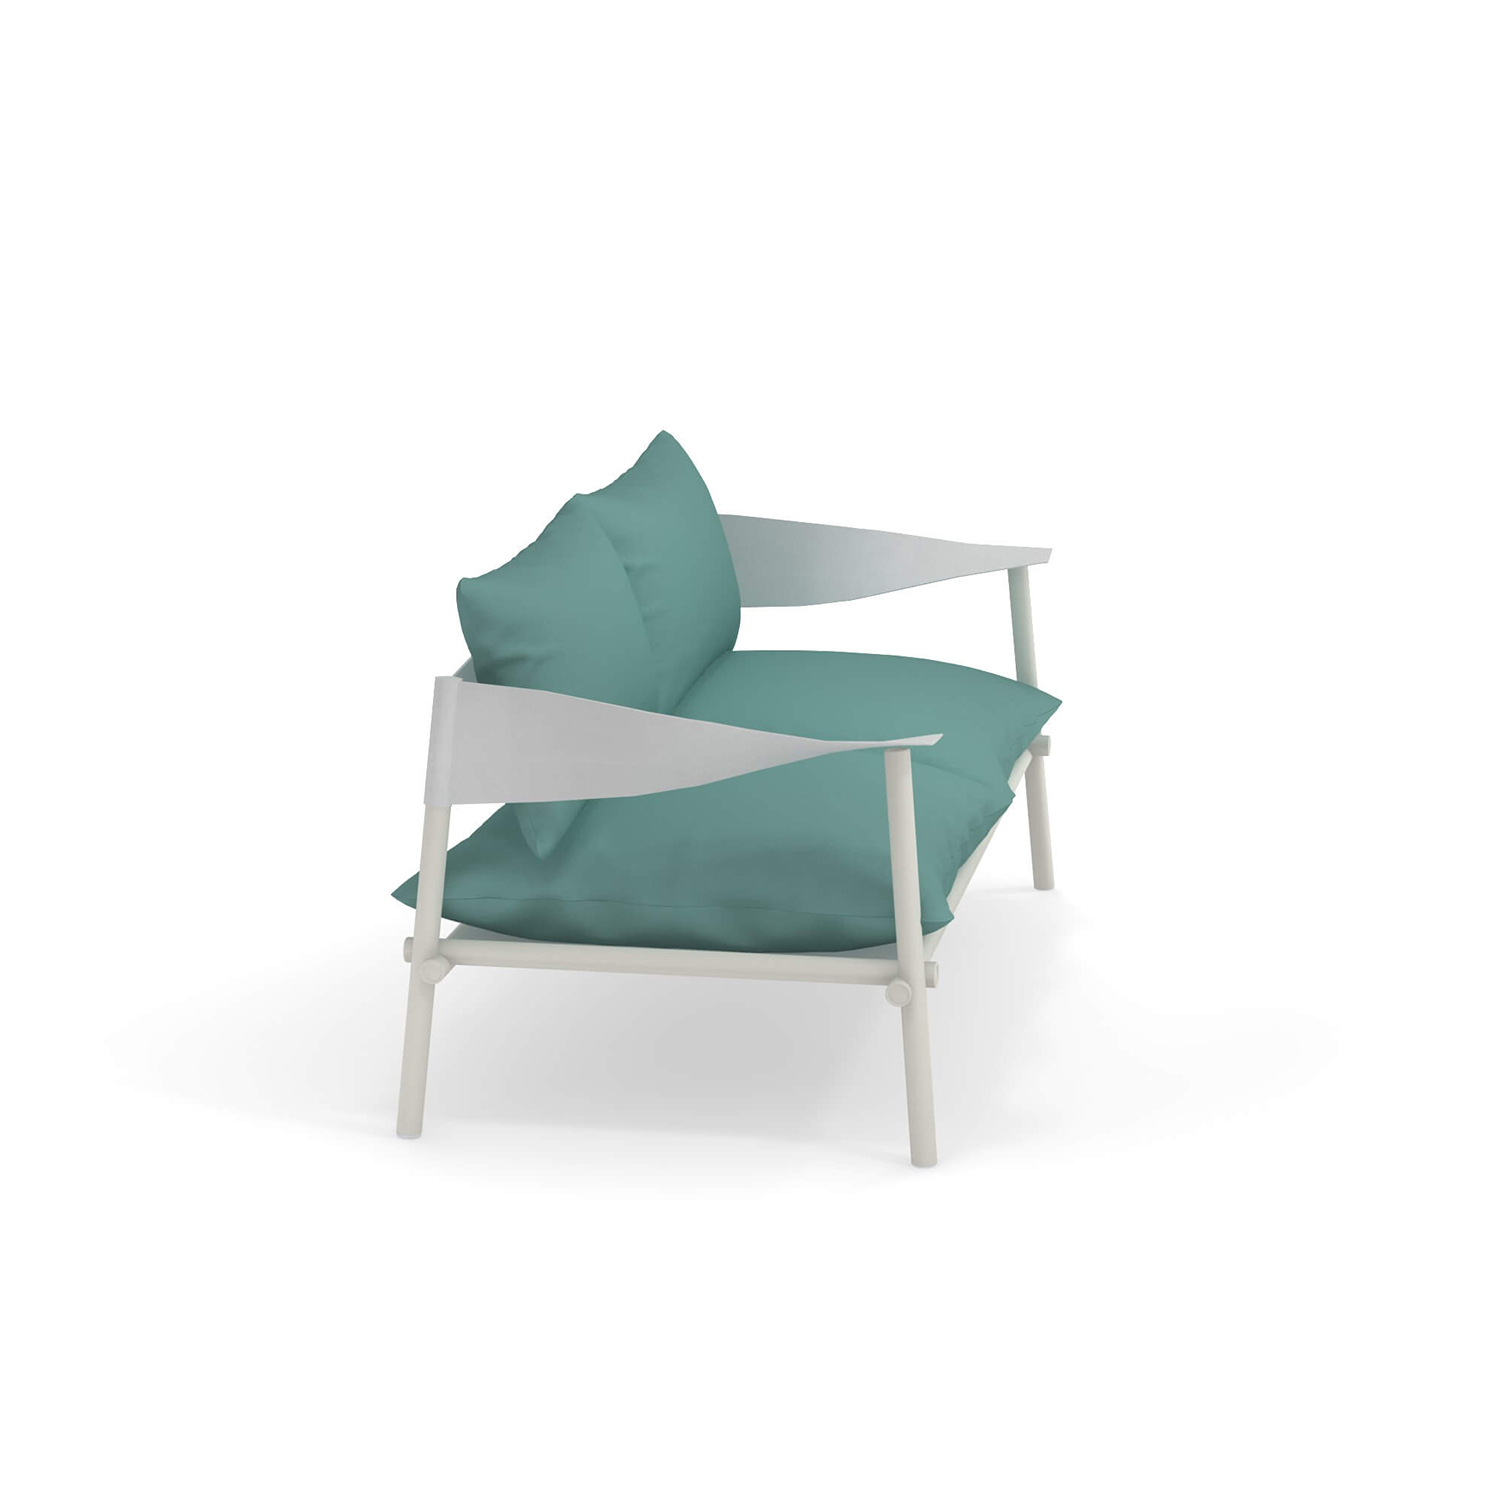 Terramare Two Seater Sofa - <p>Welcoming shapes and wide dimensions characterise the Terramare collection by Studio Chiaramonte-Marin, ideal for cosy and personal settings both indoors and outdoors. A complete range of furniture for both dining and living areas.</p>The frame for this sofa is made from aluminium and the armrests are in eco-leather. Cushions are not included. Please enquire for more information.   | Matter of Stuff